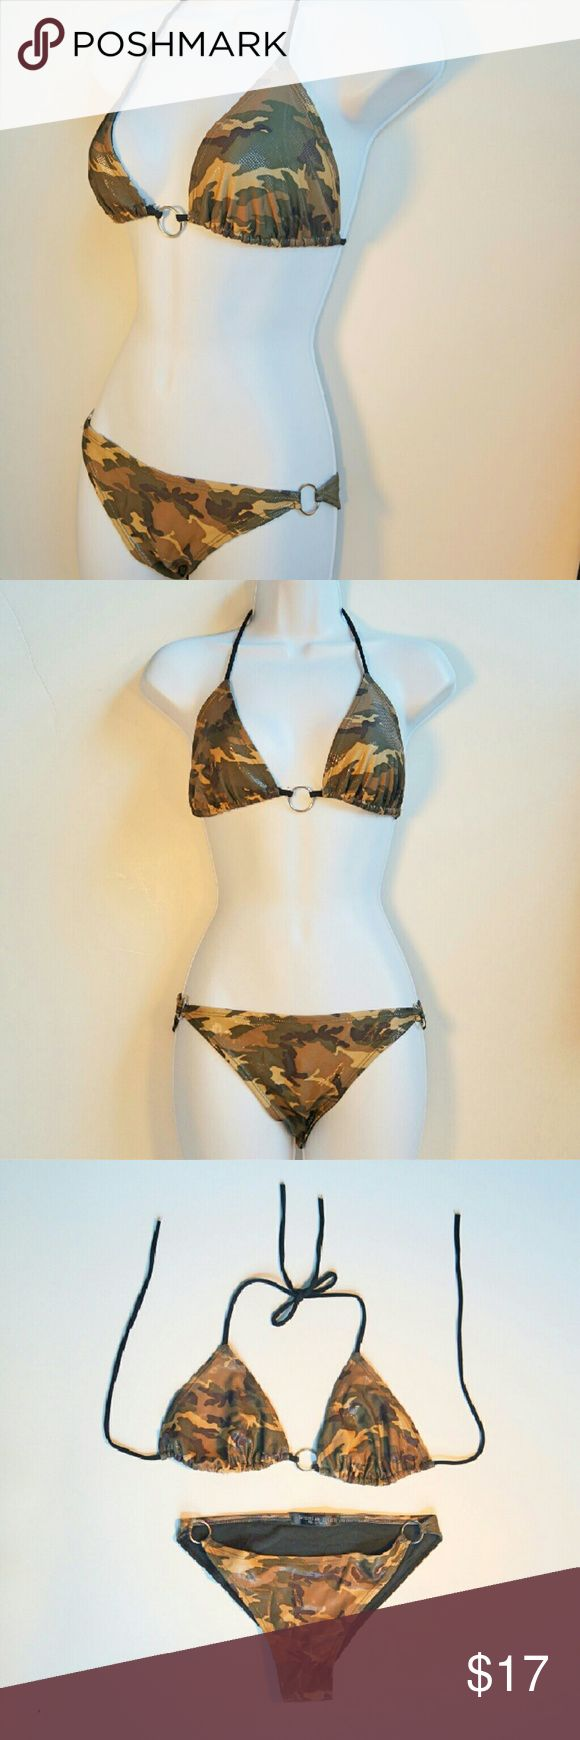 Shiny Camo Triangle String Bikini LIKE NEW - WORN ONCE for Halloween Costume   Size tags cut out but Top is M/L (fits C-D Cup) Bottoms are M/L  There is a shiny pattern over the camo design that reflects light and is very eye-catching along with silver rings at hips & chest.  Adjustable triangle top with string ties at neck and back.  Boutique brand Switchblade Stiletto  ✨Made in USA! Switchblade Stiletto  Swim Bikinis